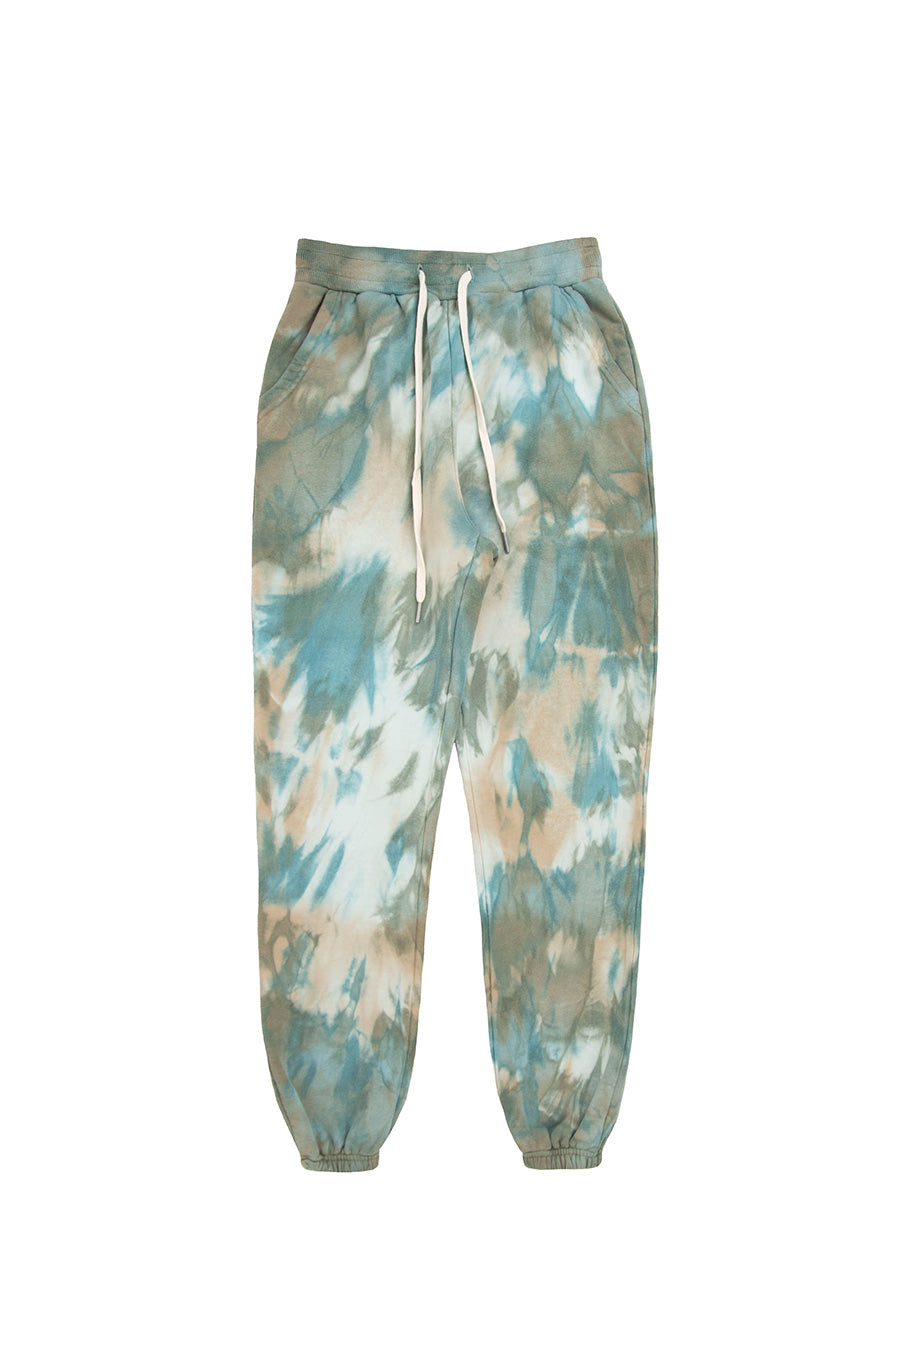 John Elliott - LA Sweatpants Sorrel Tie Dye | 1032 SPACE